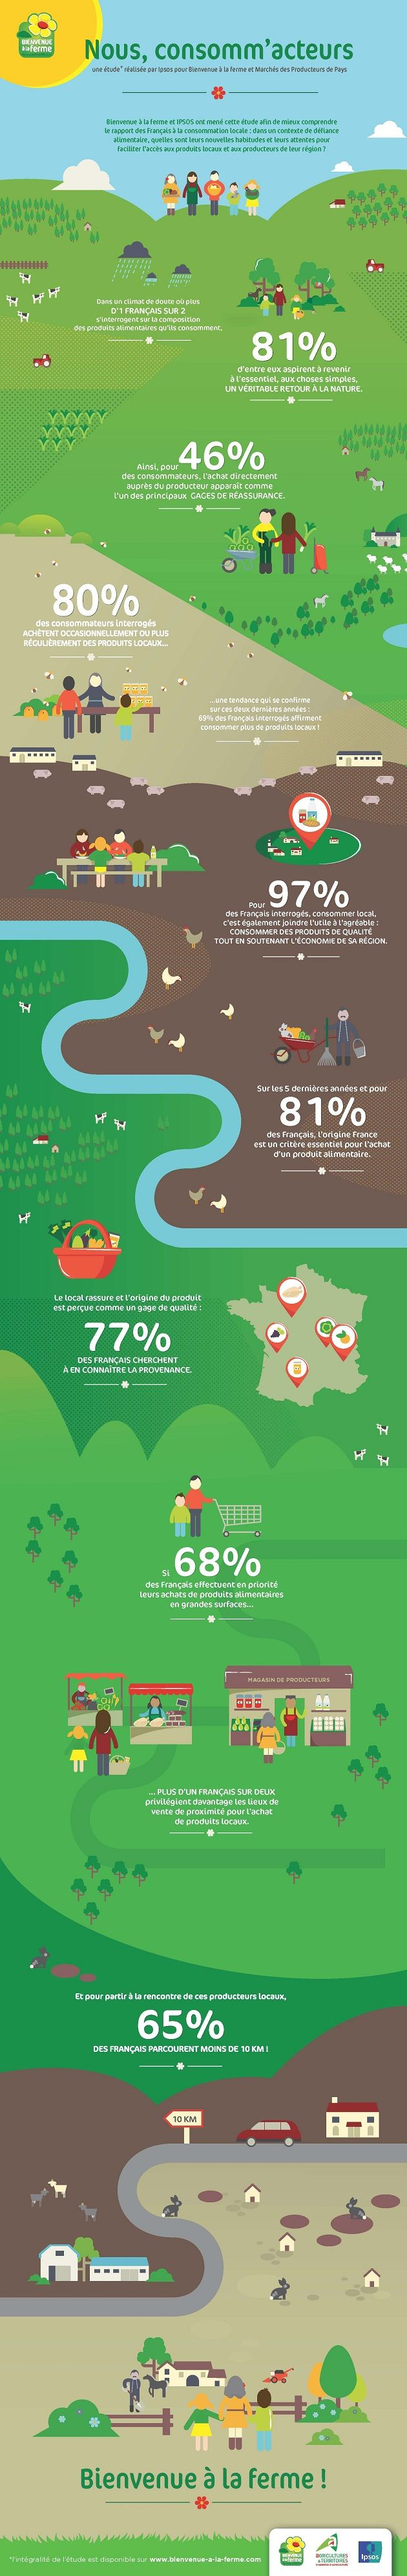 Infographie - consommation locale